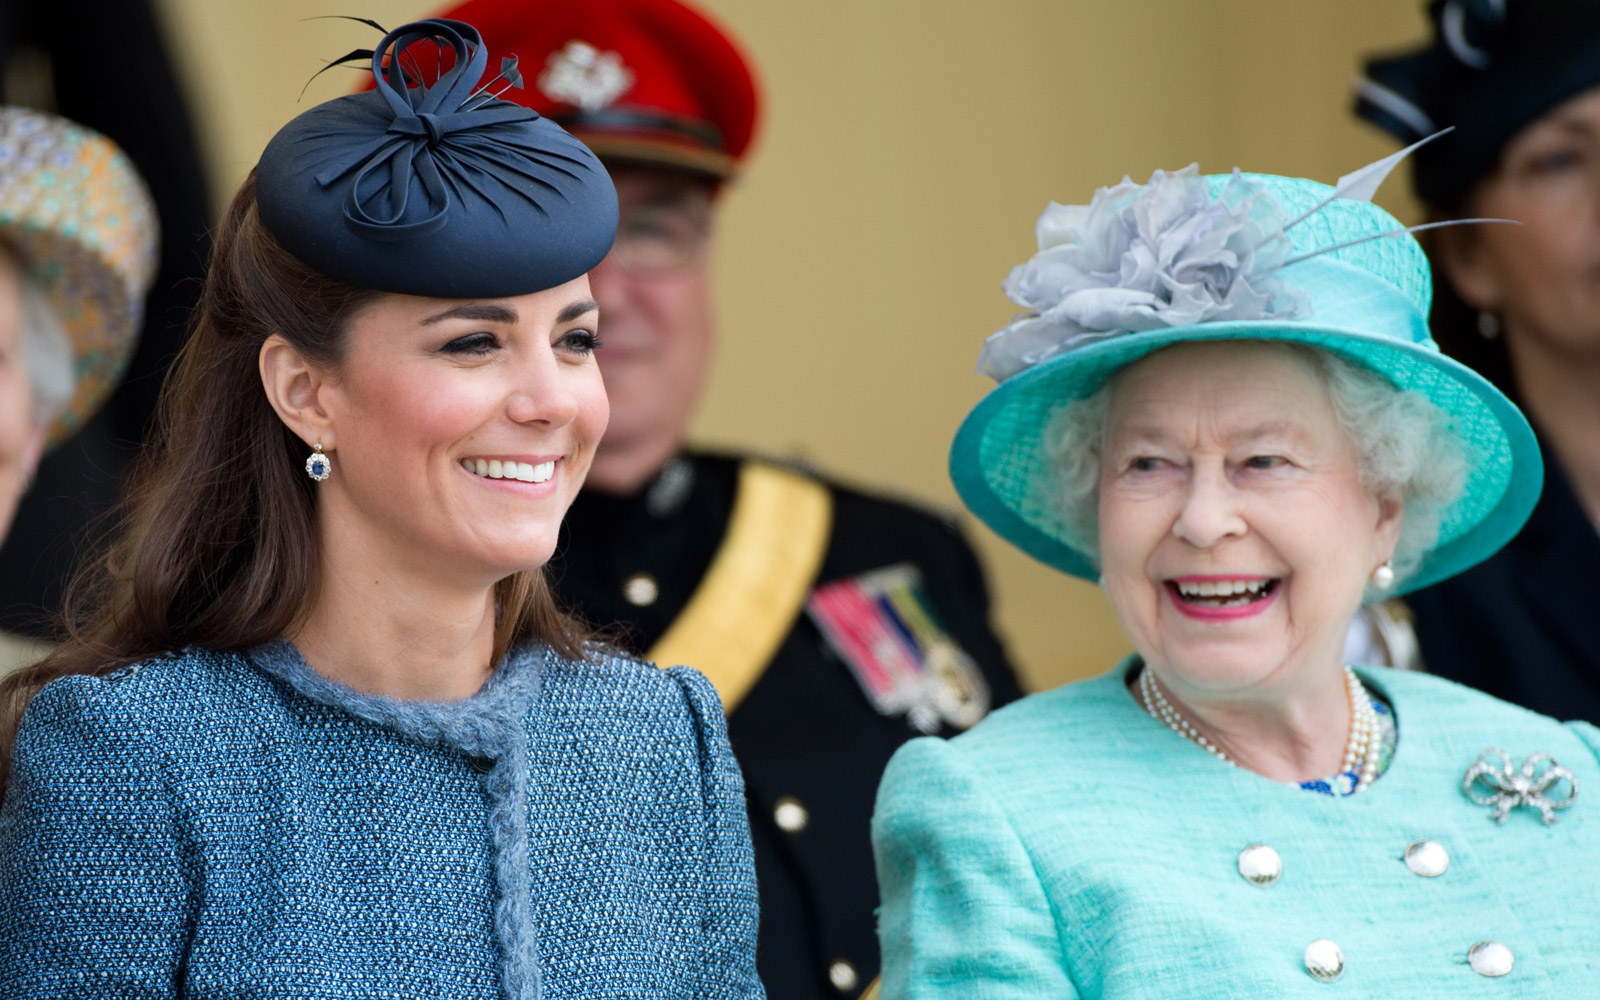 The Thoughtful Homemade Gift Kate Middleton Gave the Queen for Christmas